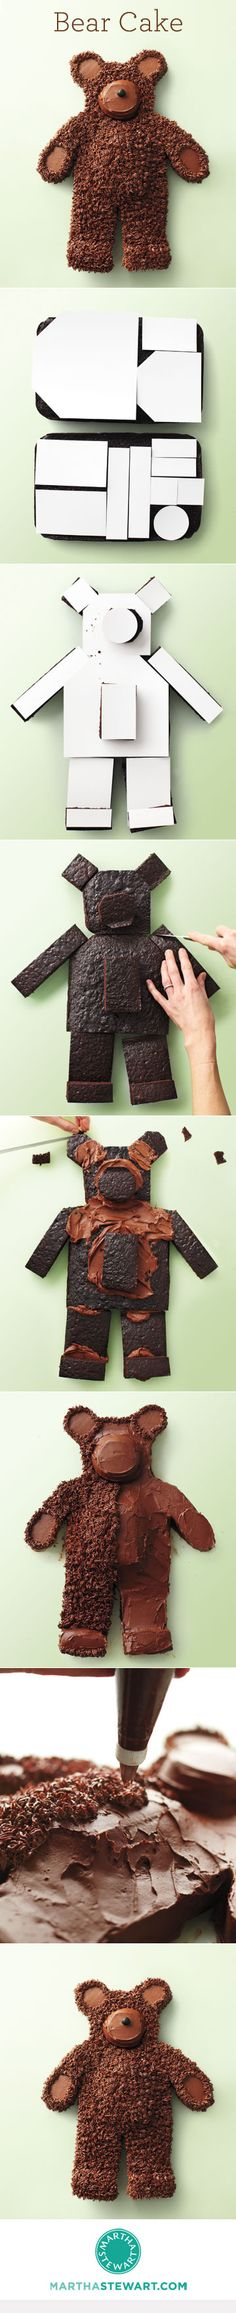 How to Make a Bear Cake / Thanks Martha Stewart ;-)